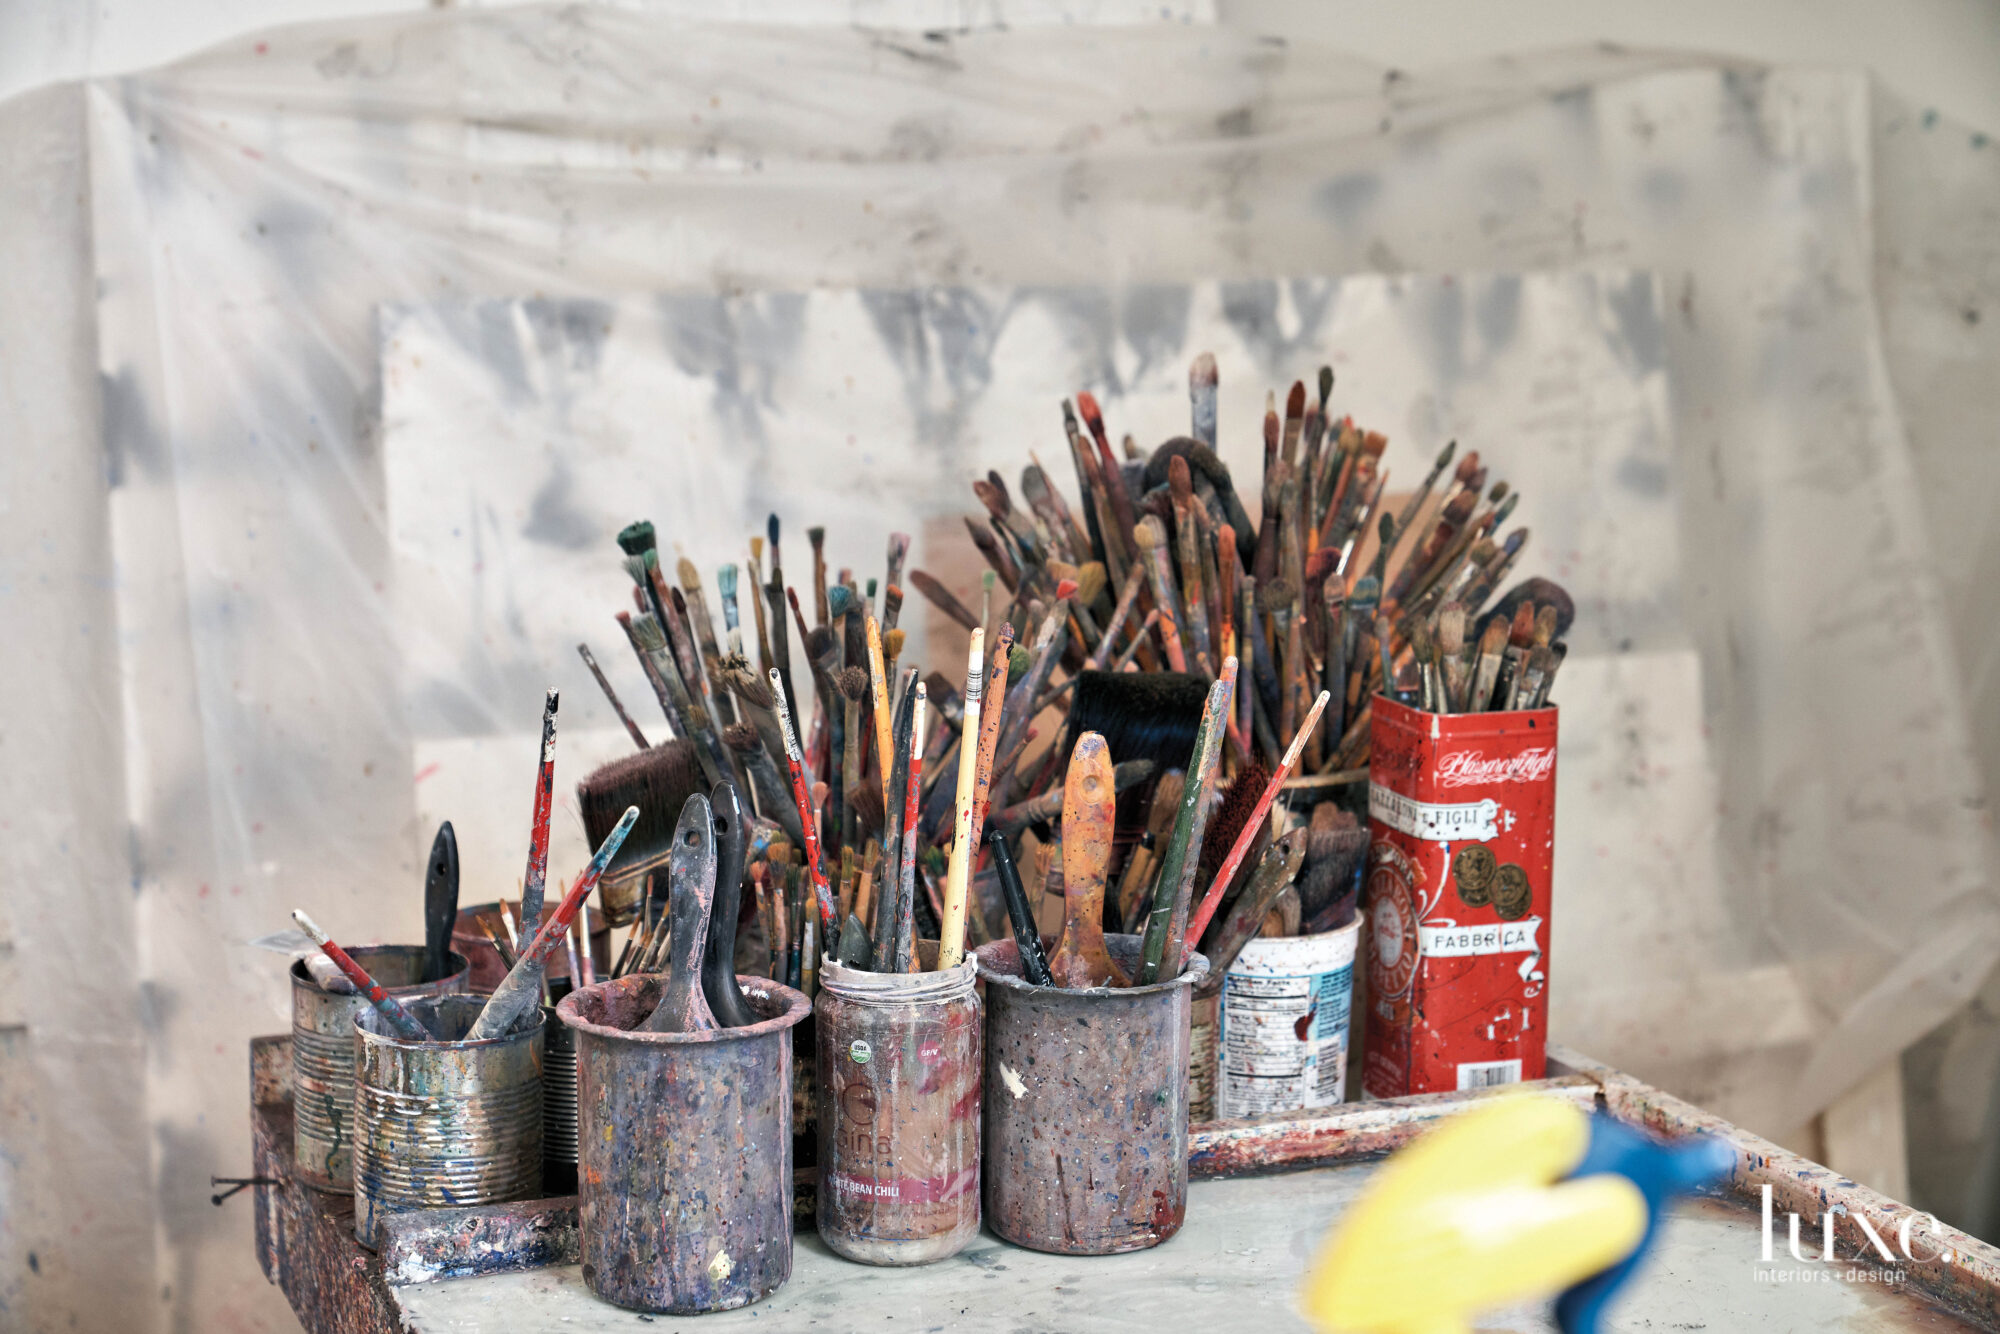 Paintbrushes fill paint-dapped containers.